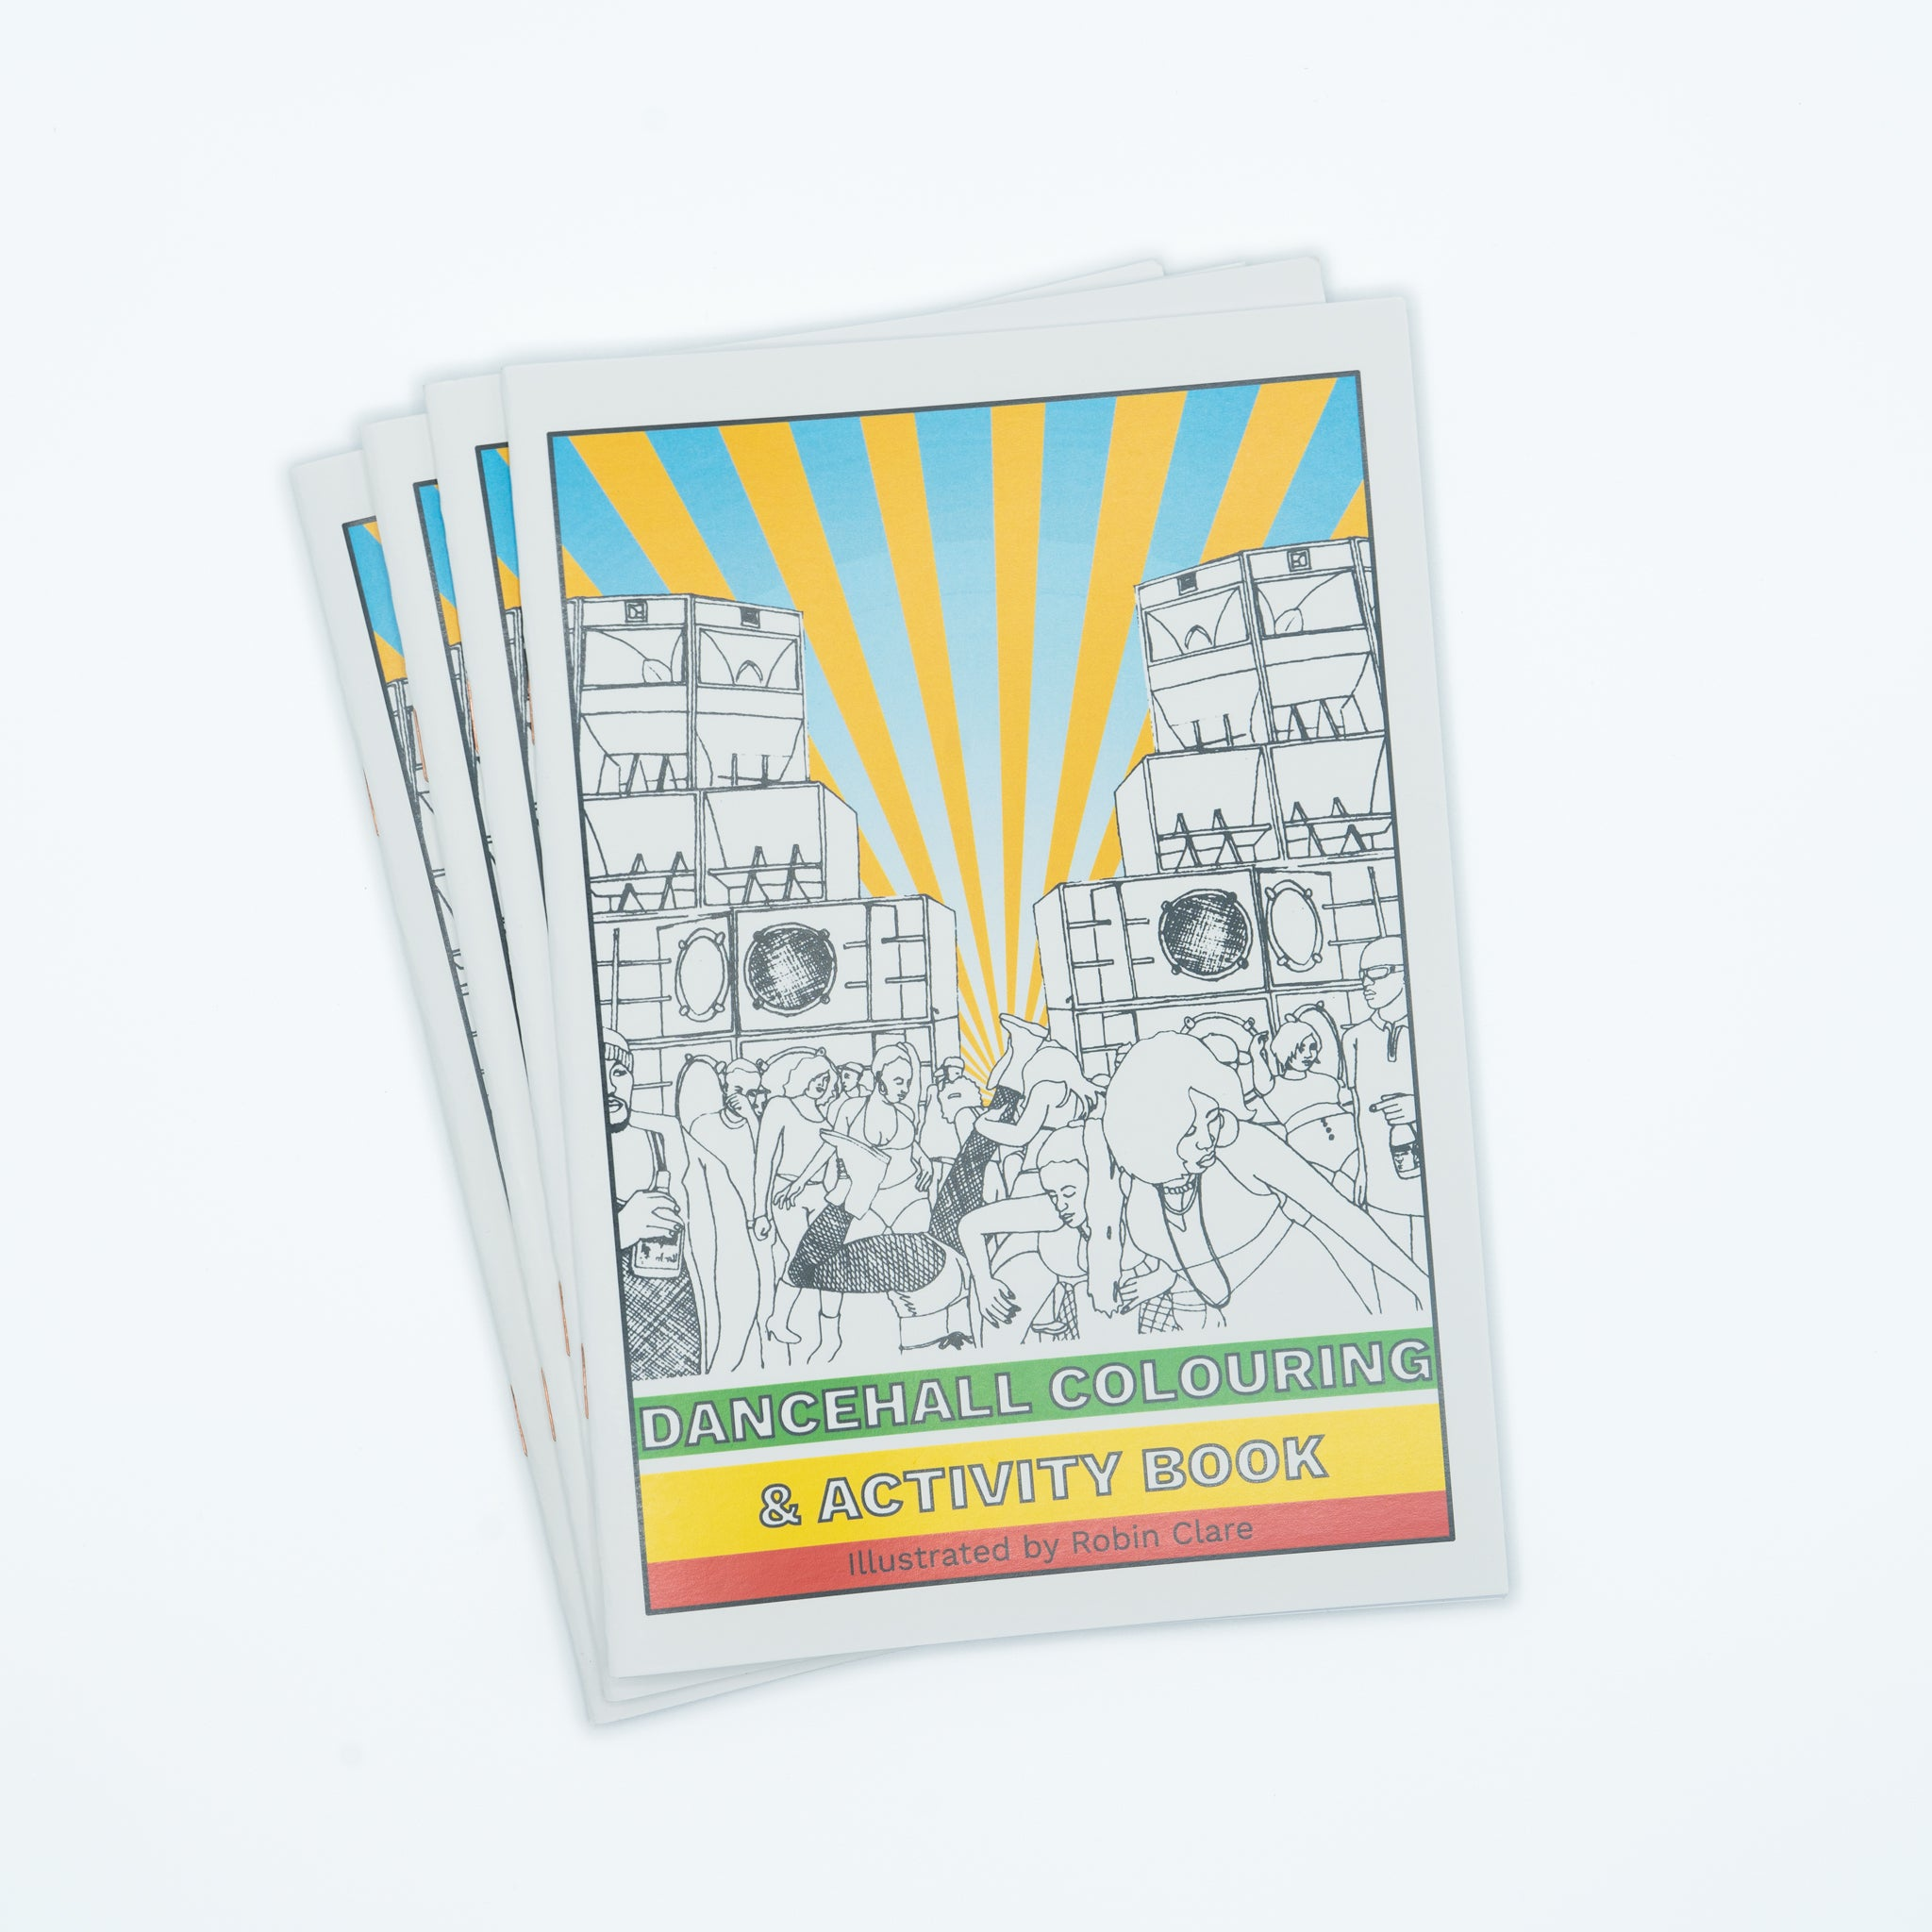 The Dancehall Colouring & Activity Book from Robin Clare